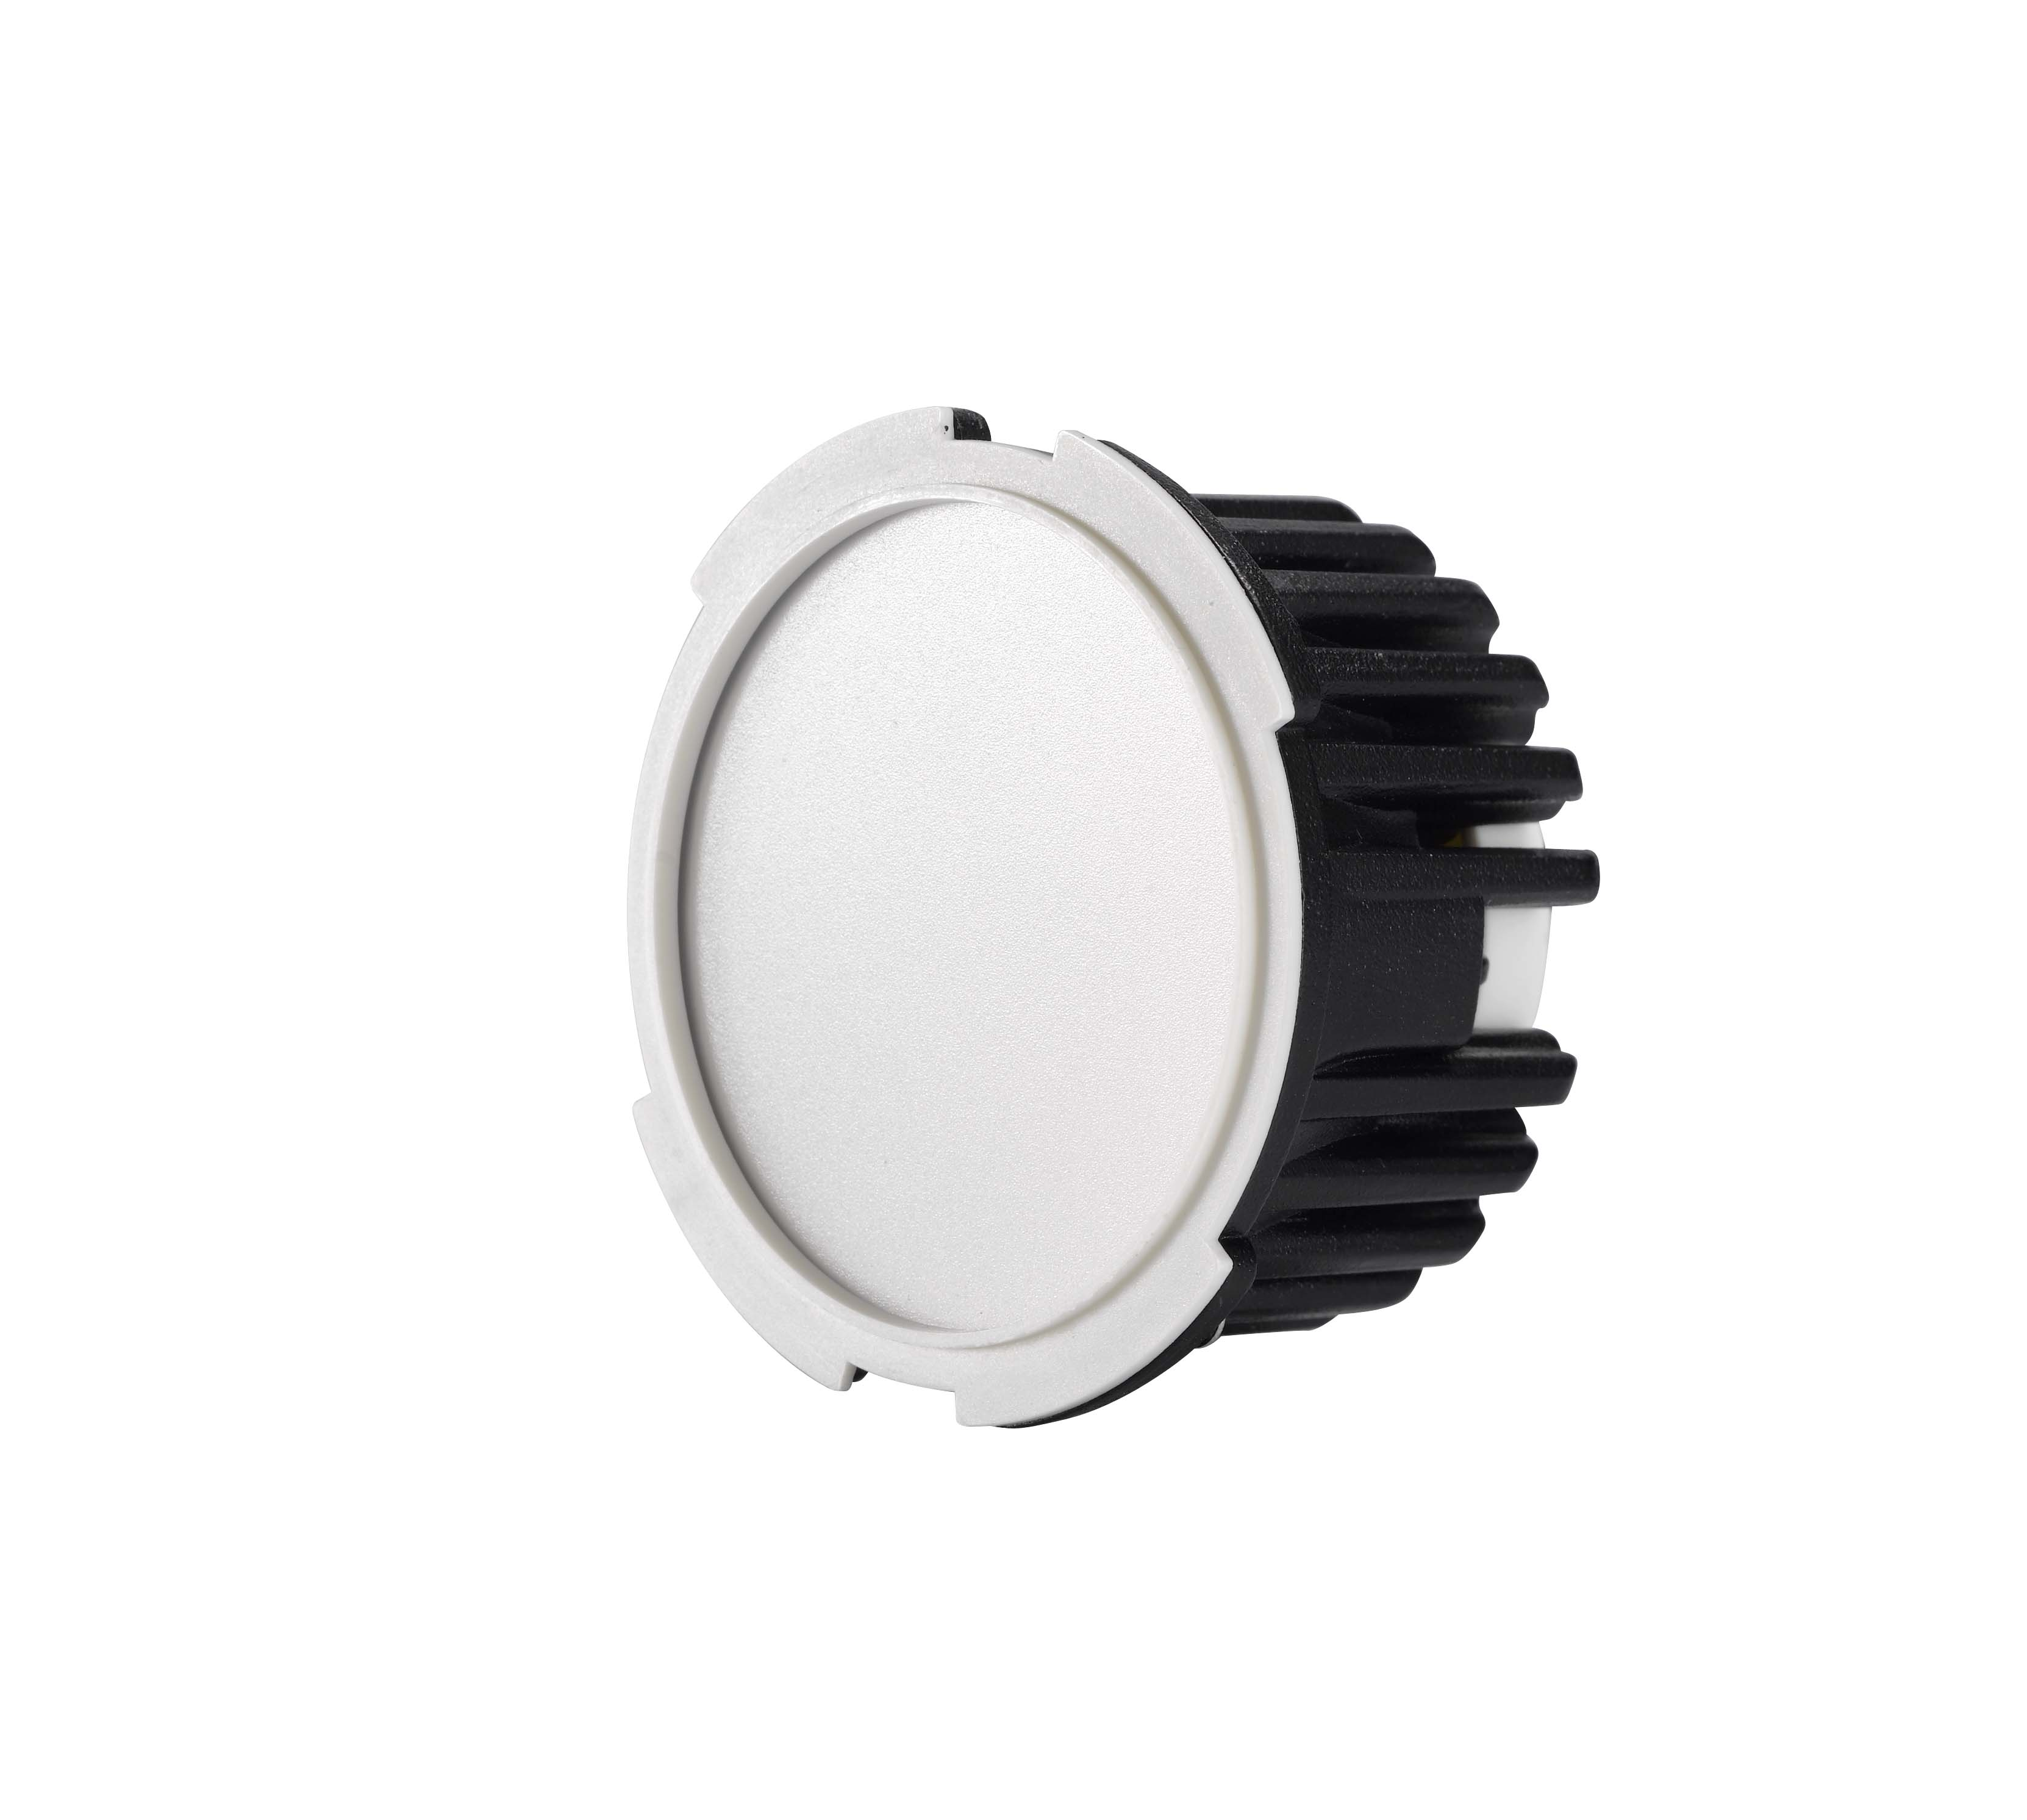 5w led downlight module